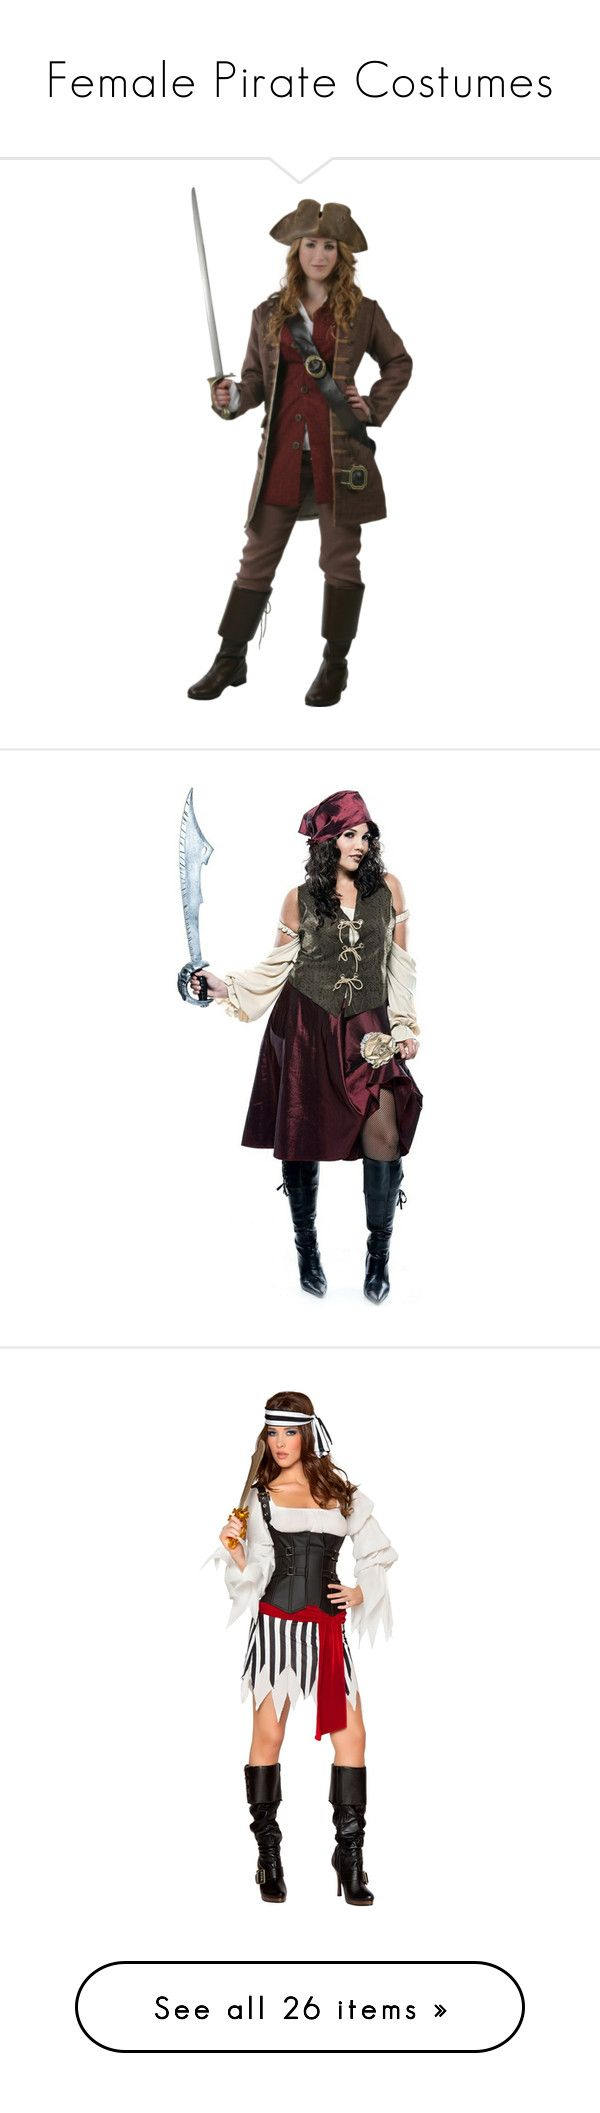 """Female Pirate Costumes"" by justkath ❤ liked on Polyvore featuring pirates, costumes, plus size womens costumes, plus size pirate costume, adult plus size costumes, adult halloween costumes, plus size womens pirate costume, sexy adult costumes, pirate costume and sexy halloween costumes"